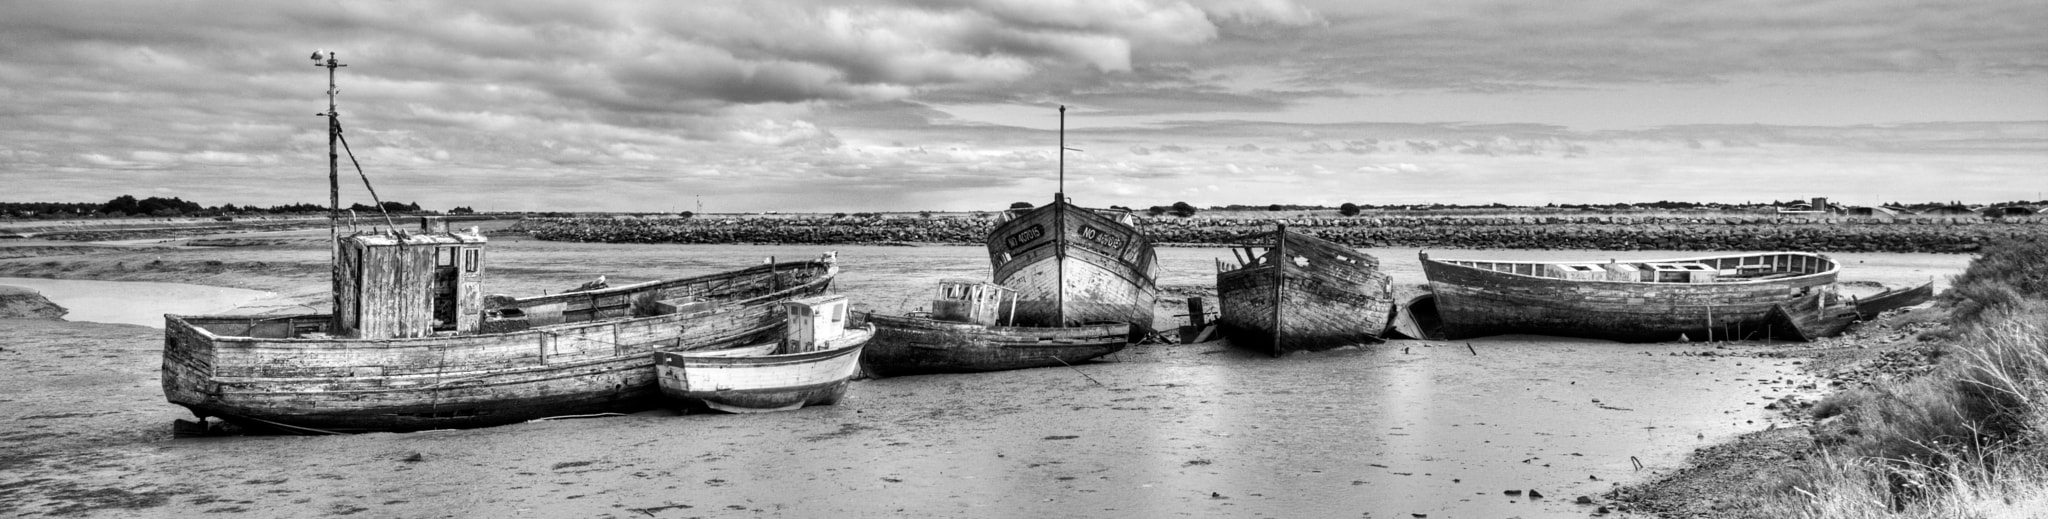 Photograph The Forgotten Family - pano by Neil Bryars on 500px